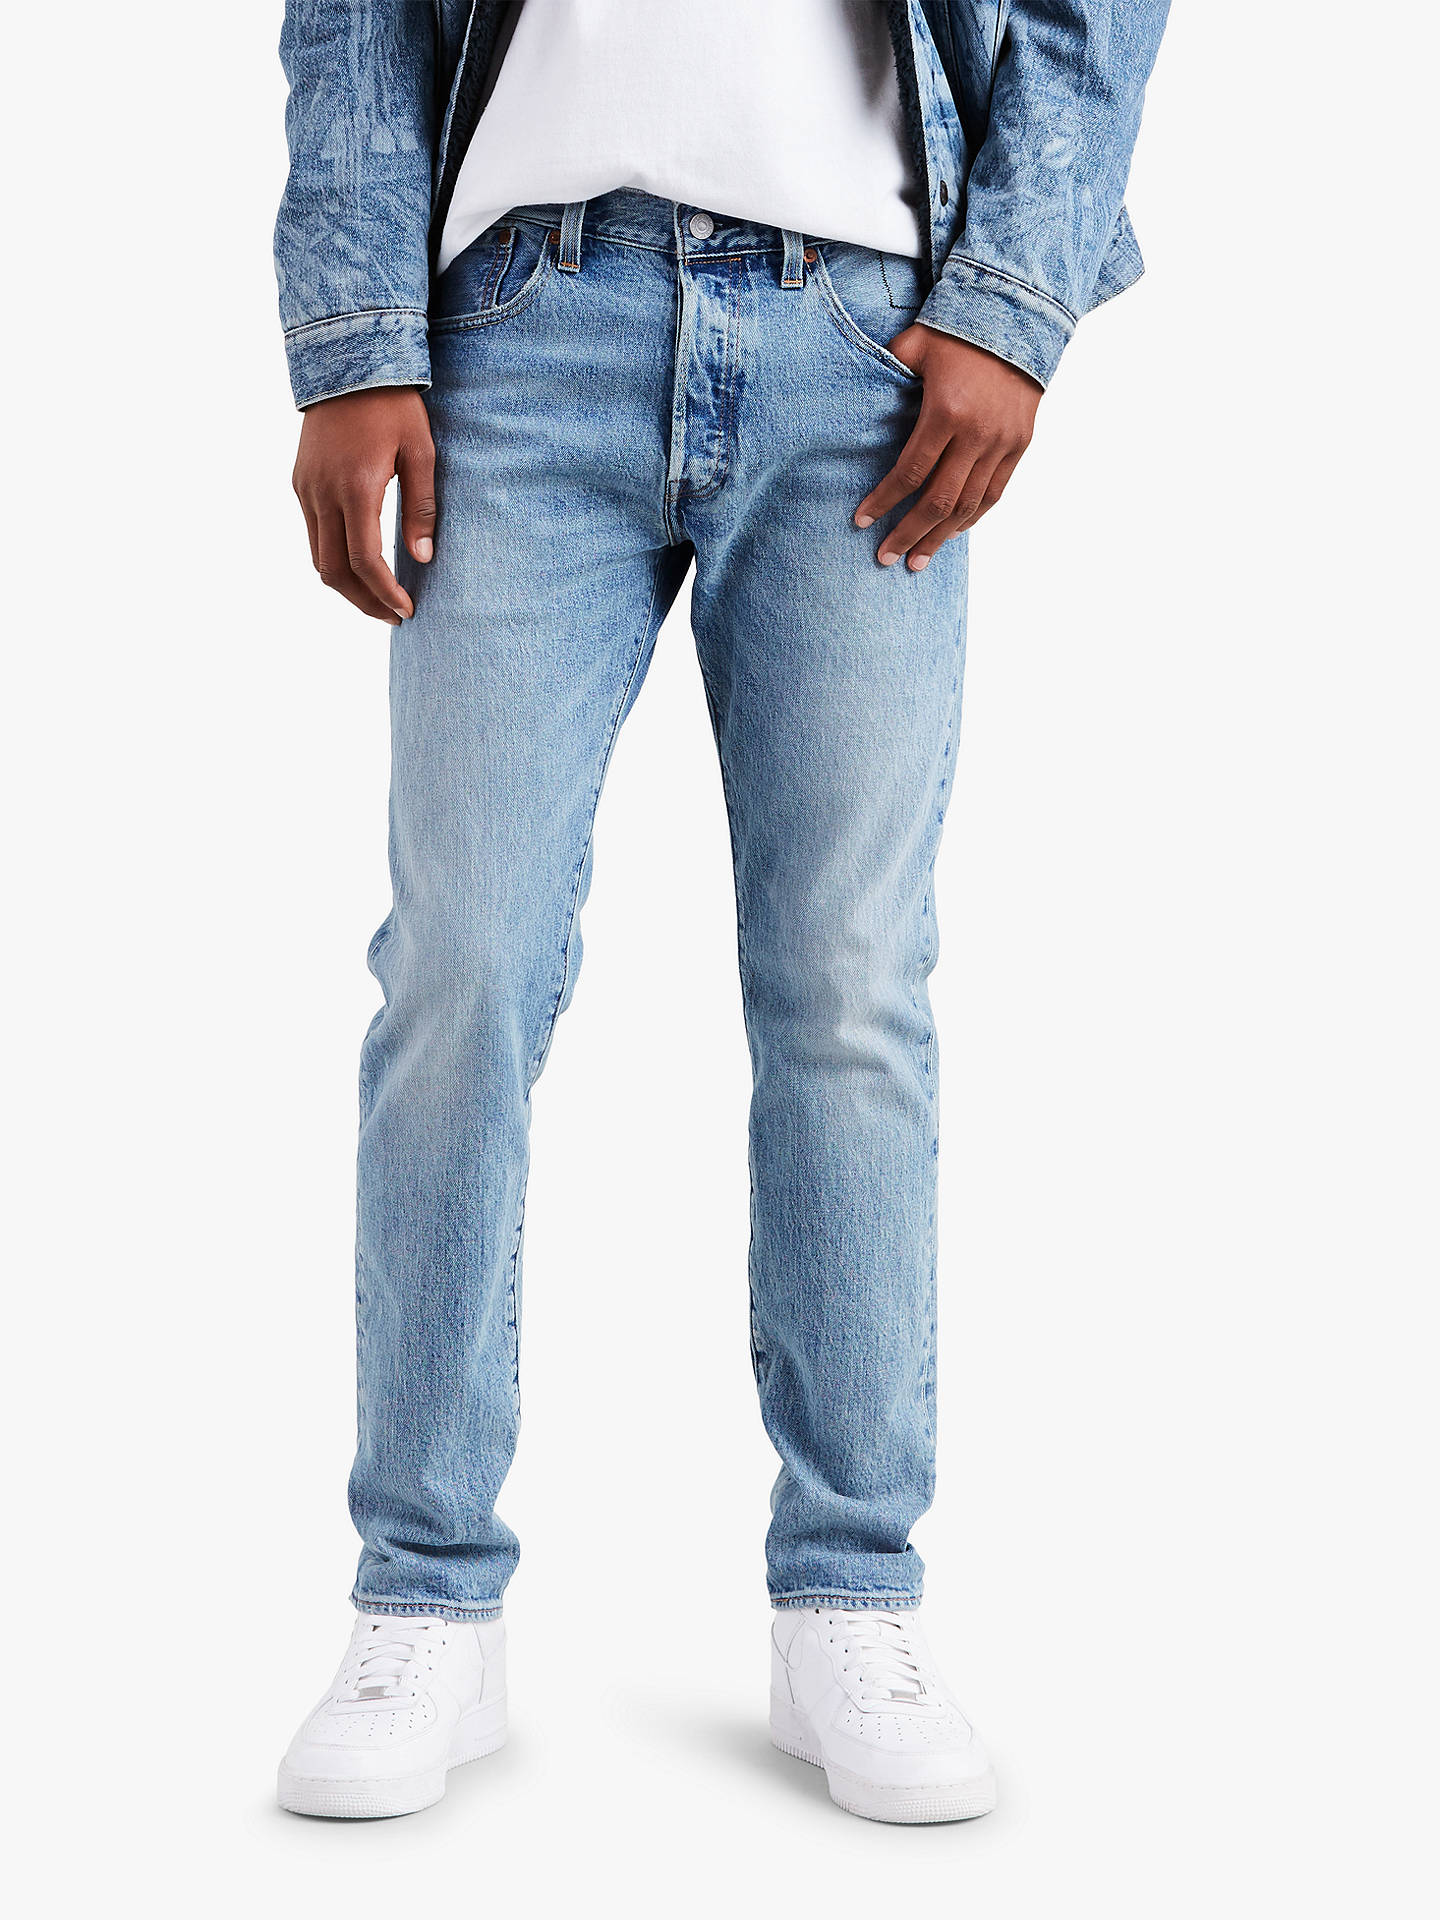 6402ef0fbe5 Buy Levi's x Justin Timberlake 501 Slim Tapered Fit Jeans, Hillman, 32R  Online at ...